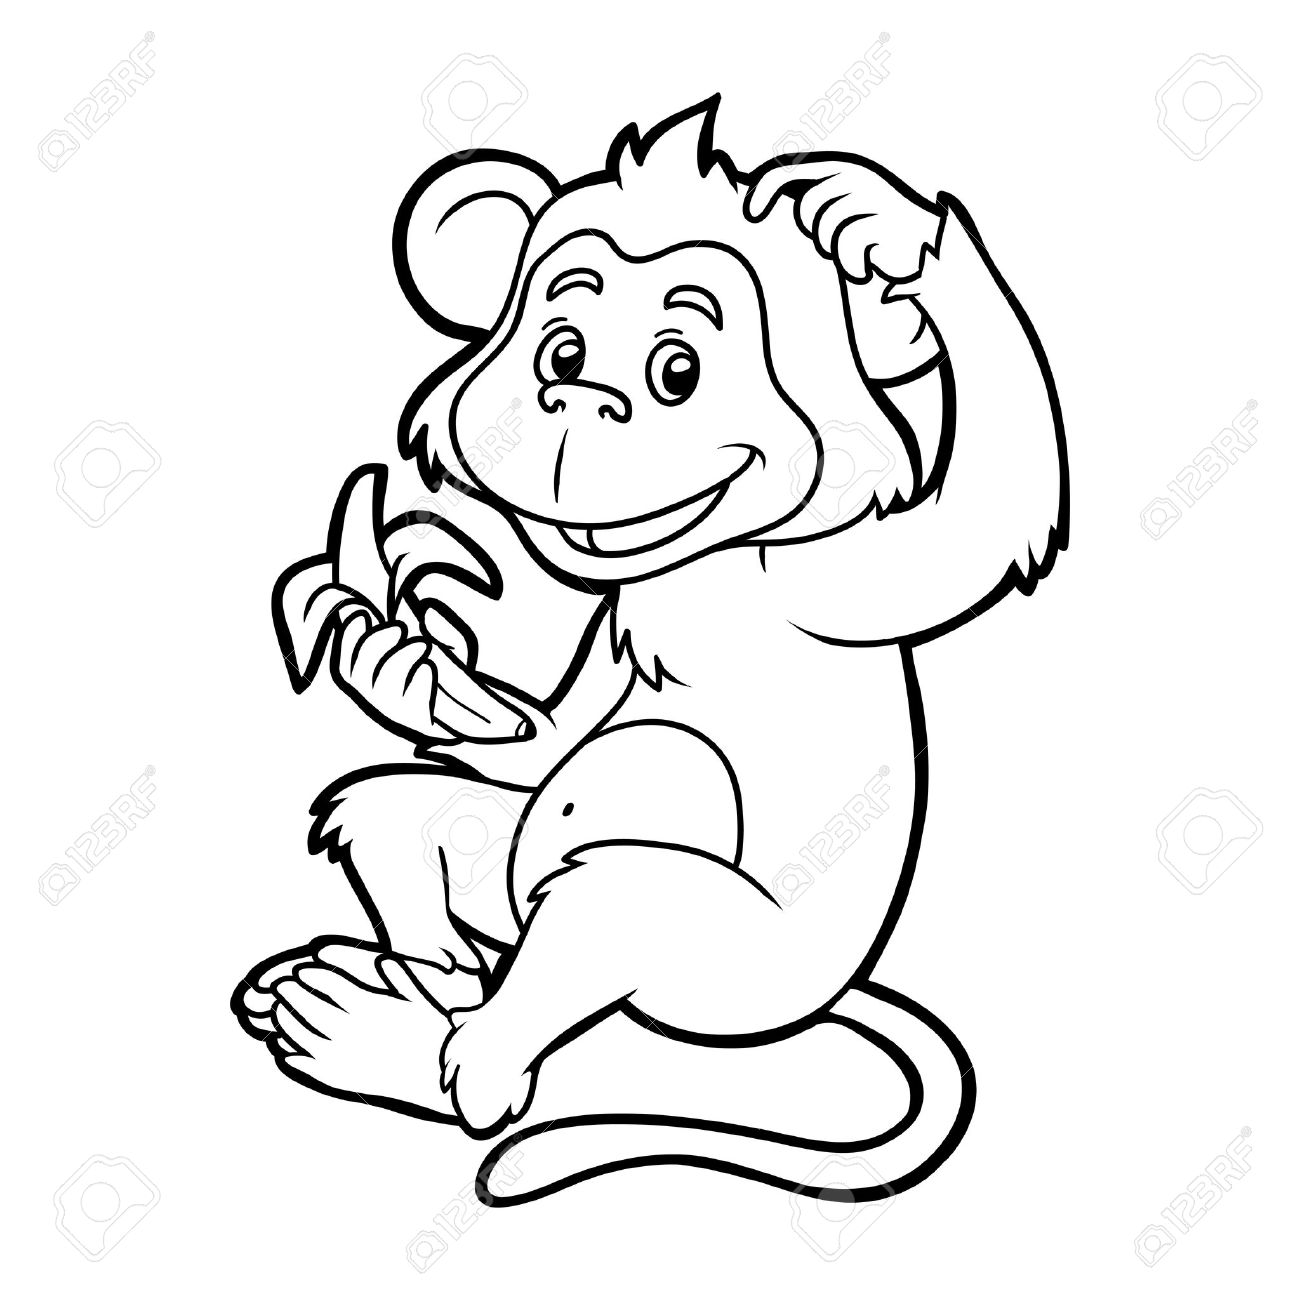 Coloring Book For Children: Monkey With A Banana Royalty Free ...